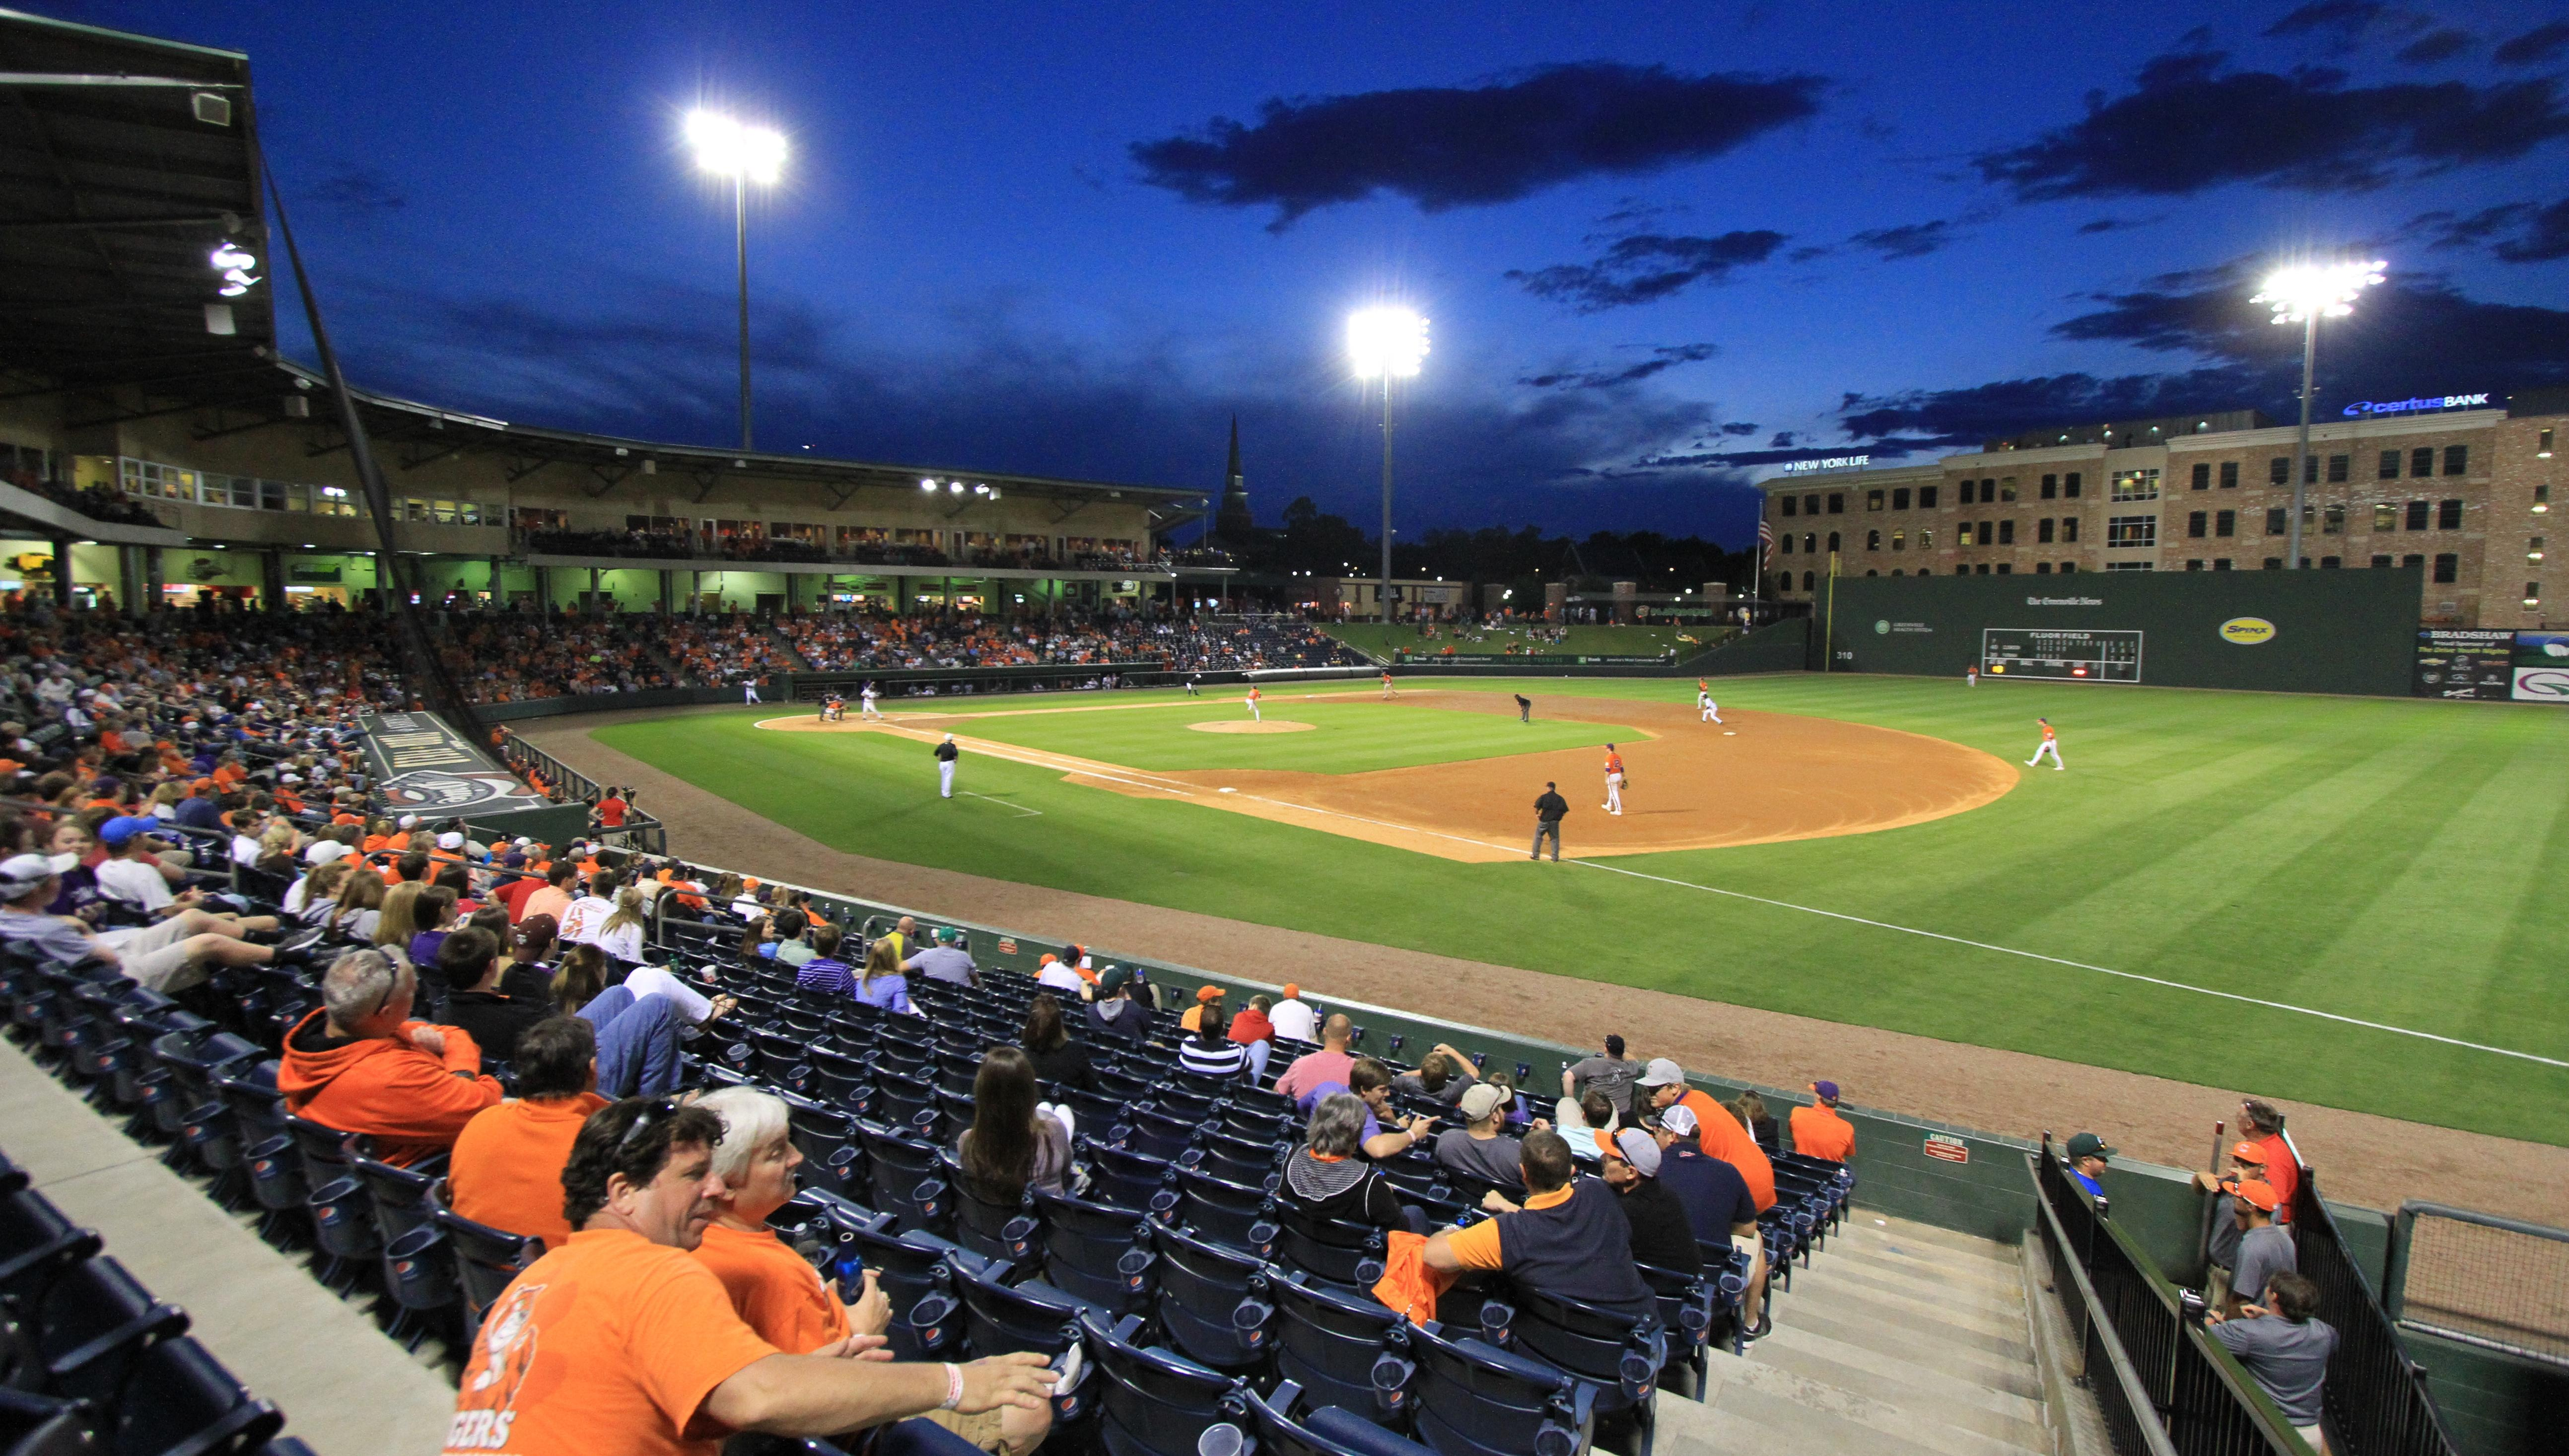 Clemson Baseball to Host College Lafleche in Game at Fluor Field on October 17